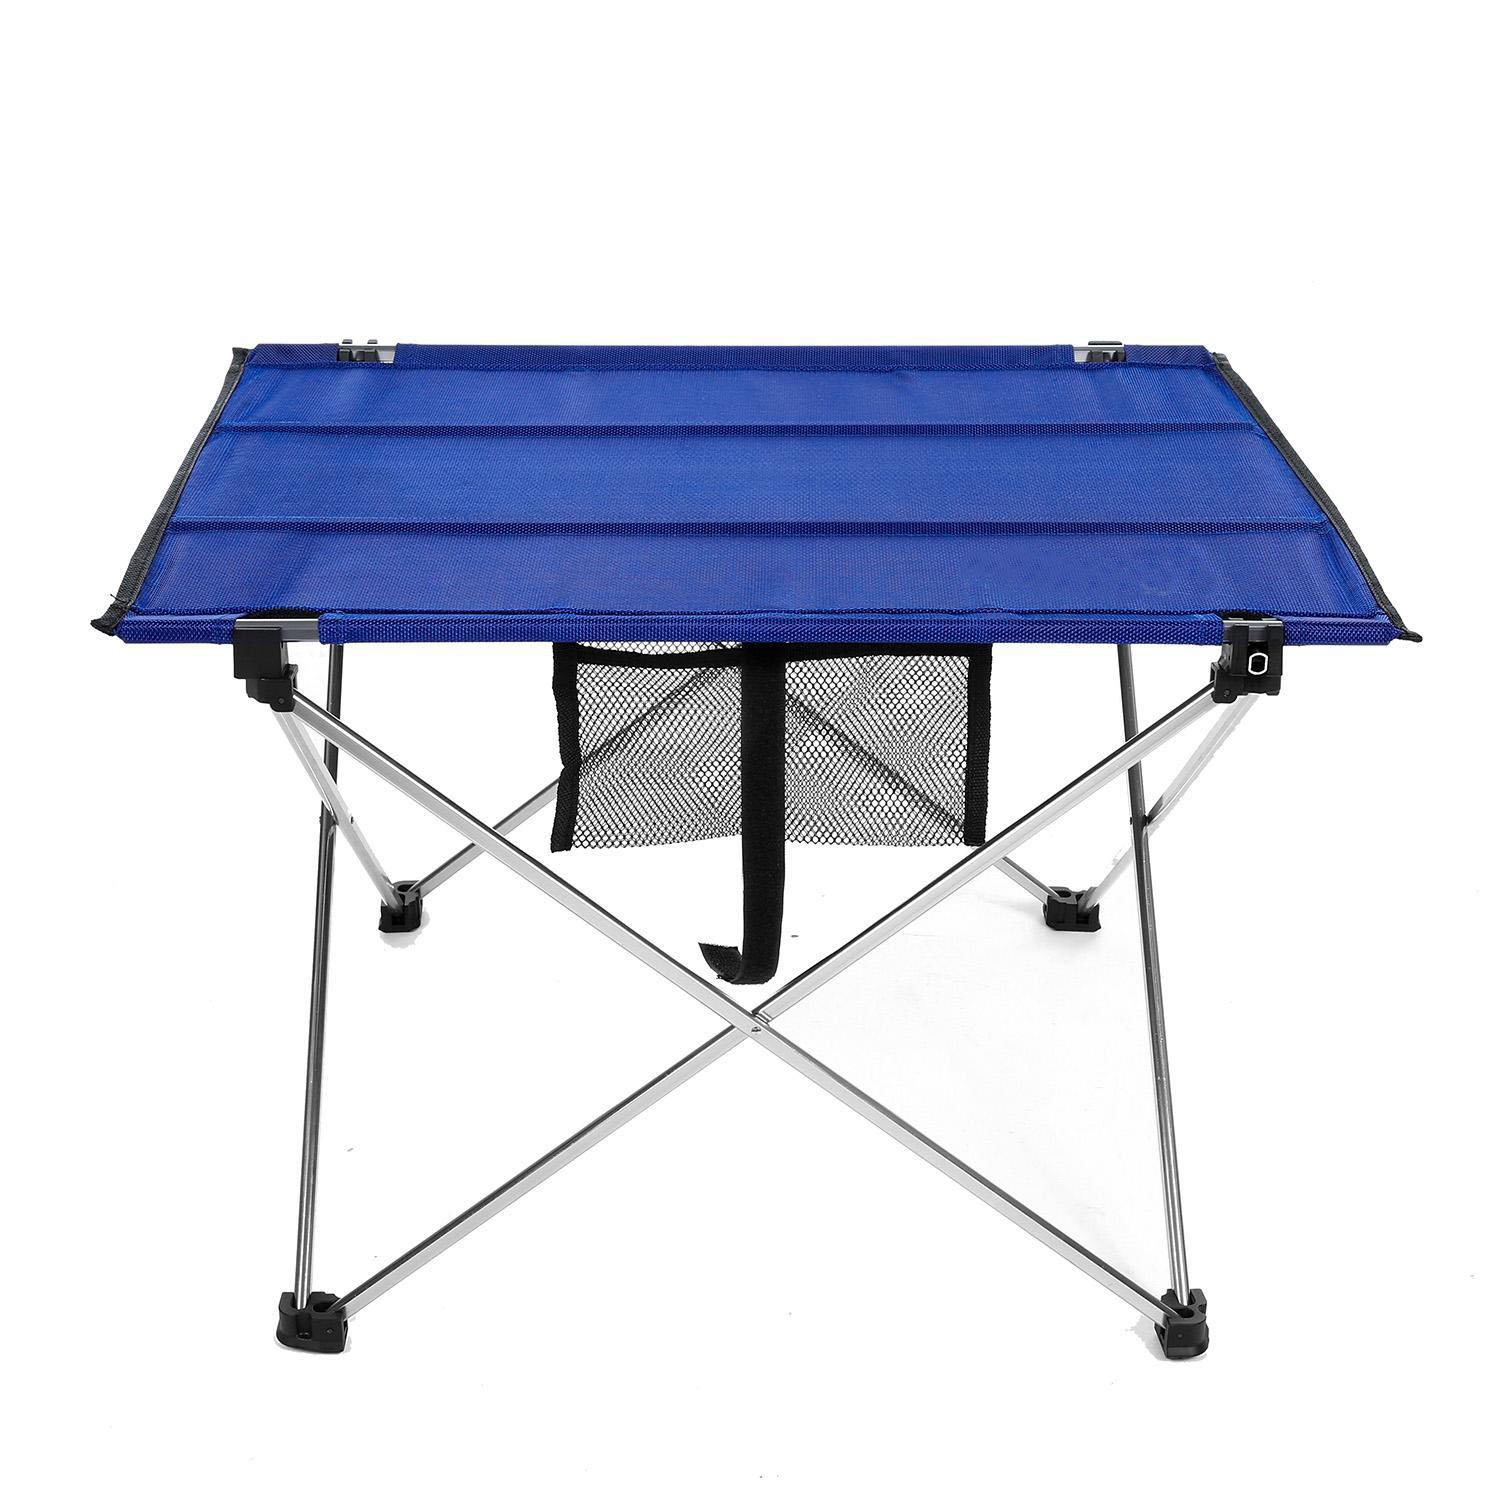 Camping Table, Meflying Camp Table Portable Lightweight Folding Aluminum Table for Outdoor Fishing Travel Hiking Picnic (Blue-22.1 x 16.5 x 14.6inch)